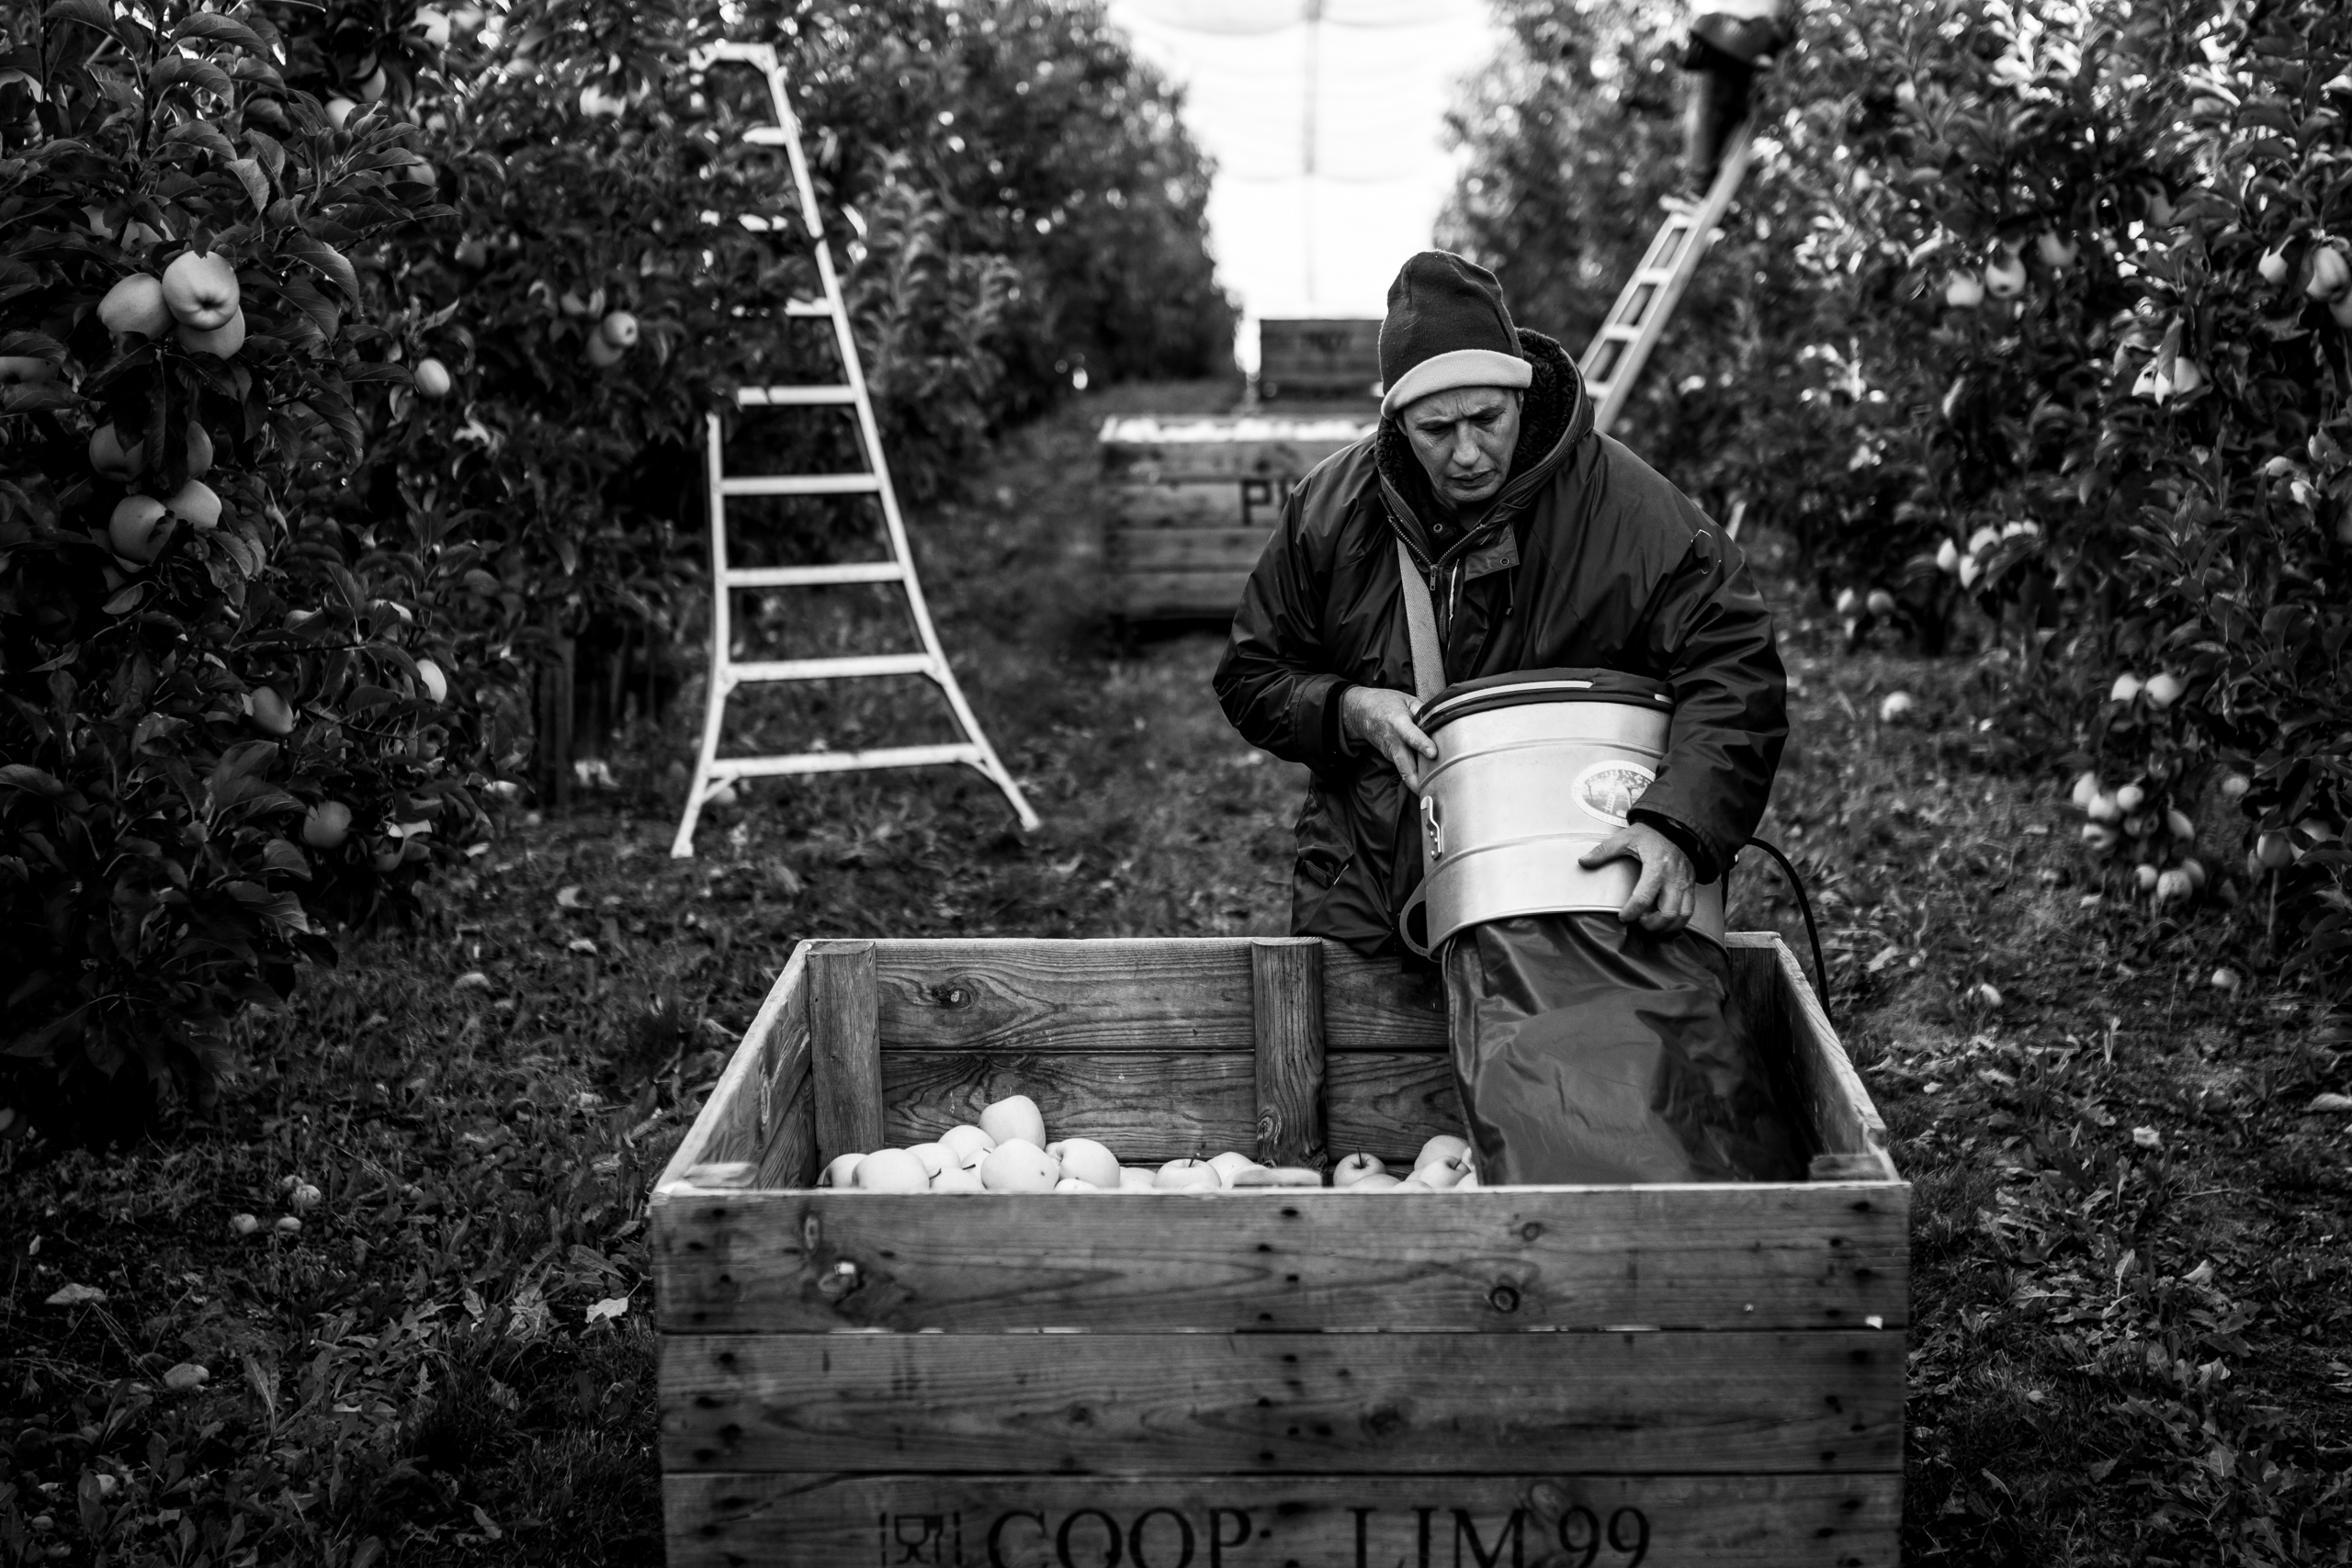 The collection of the apple in France is a seasonal work that takes place between the months of September and October.